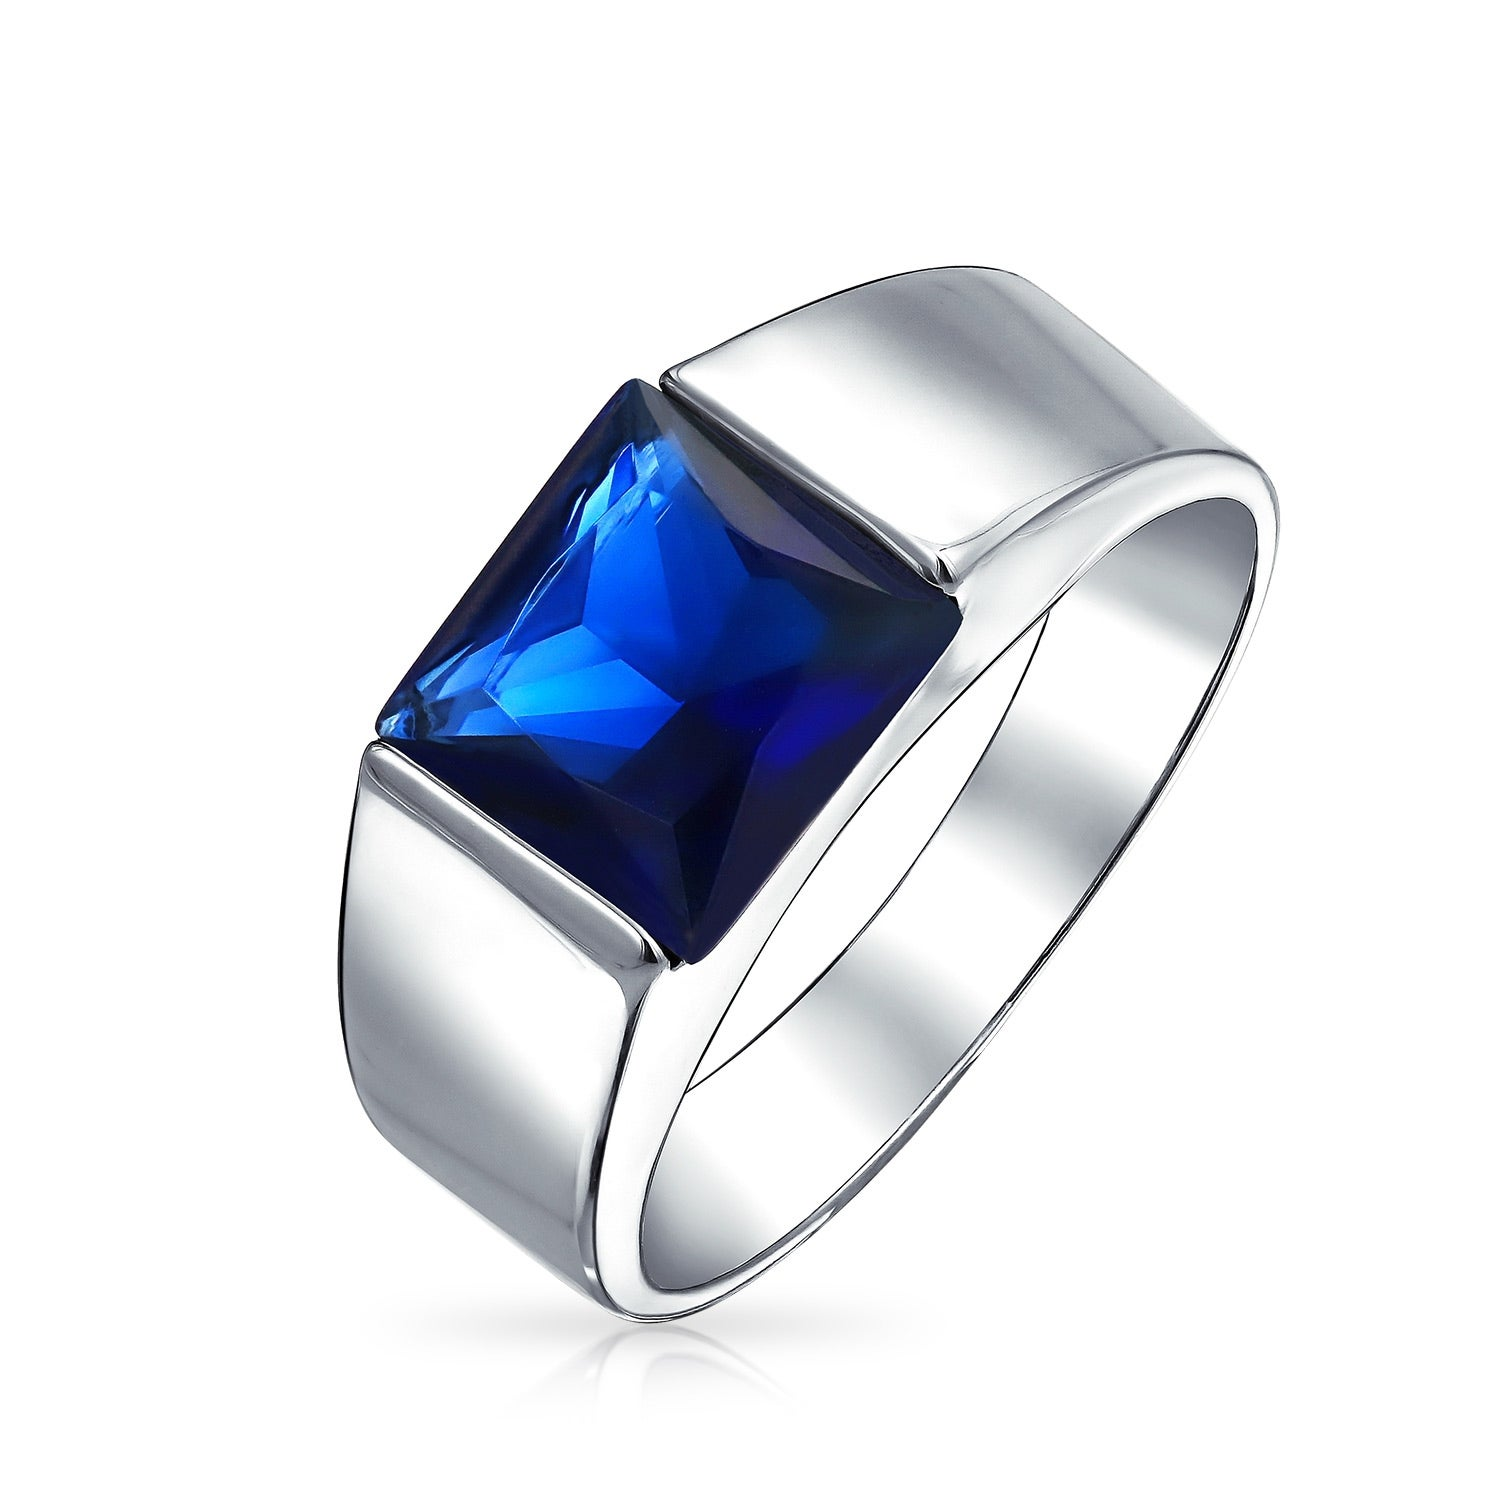 Buy Bling Jewelry Men's Rings Online At Overstock Our Best Deals: Sword Art Online Wedding Ring At Websimilar.org